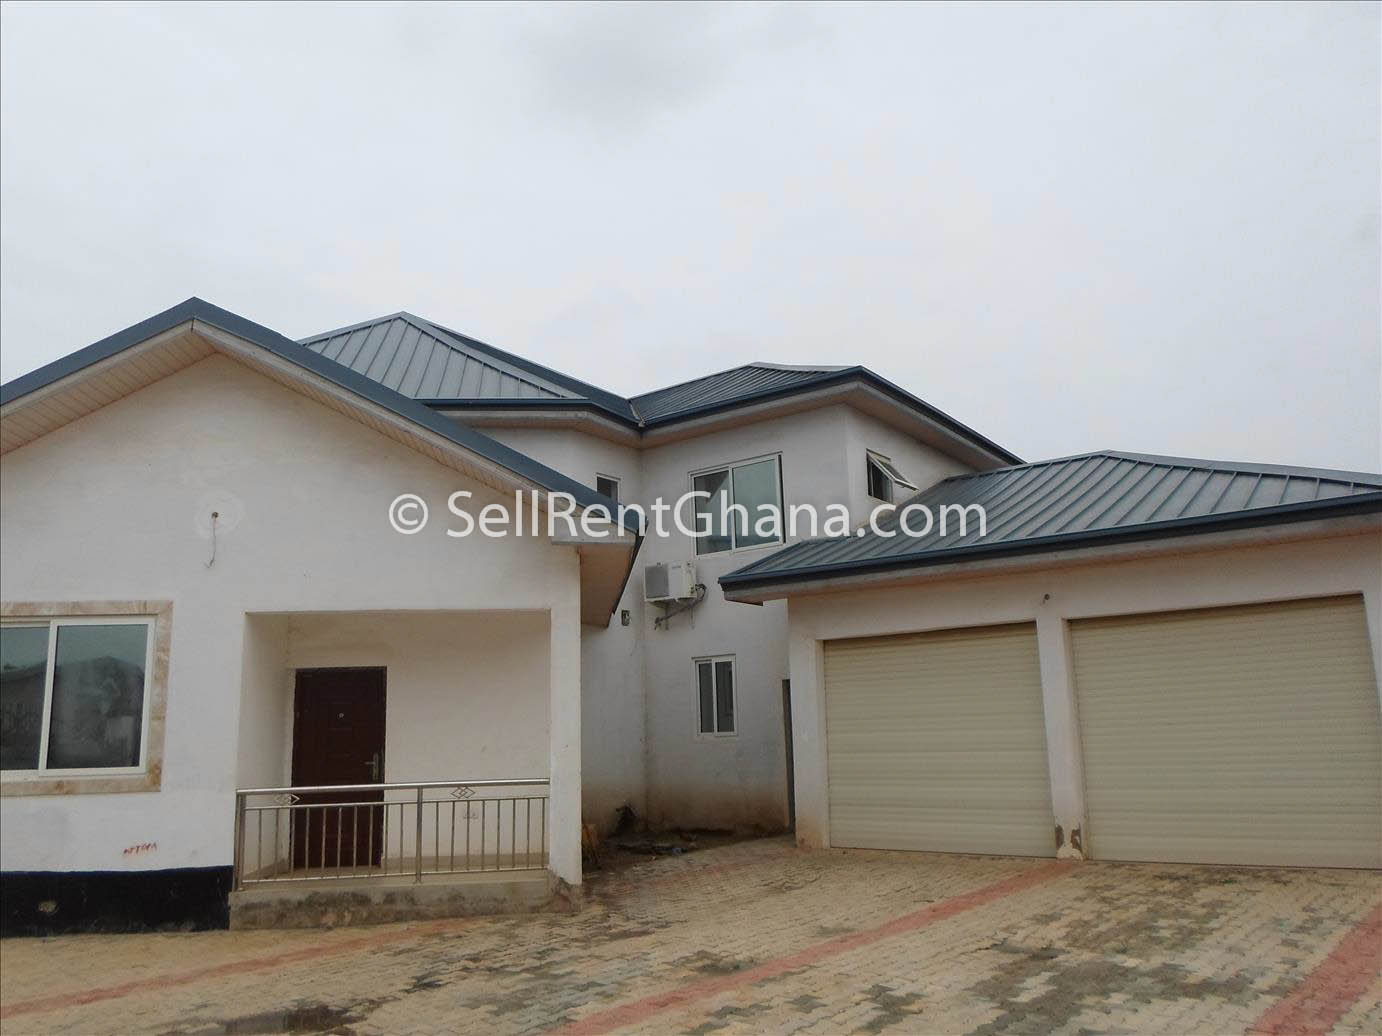 5 Bedroom House For Rent In East Legon Sellrent Ghana